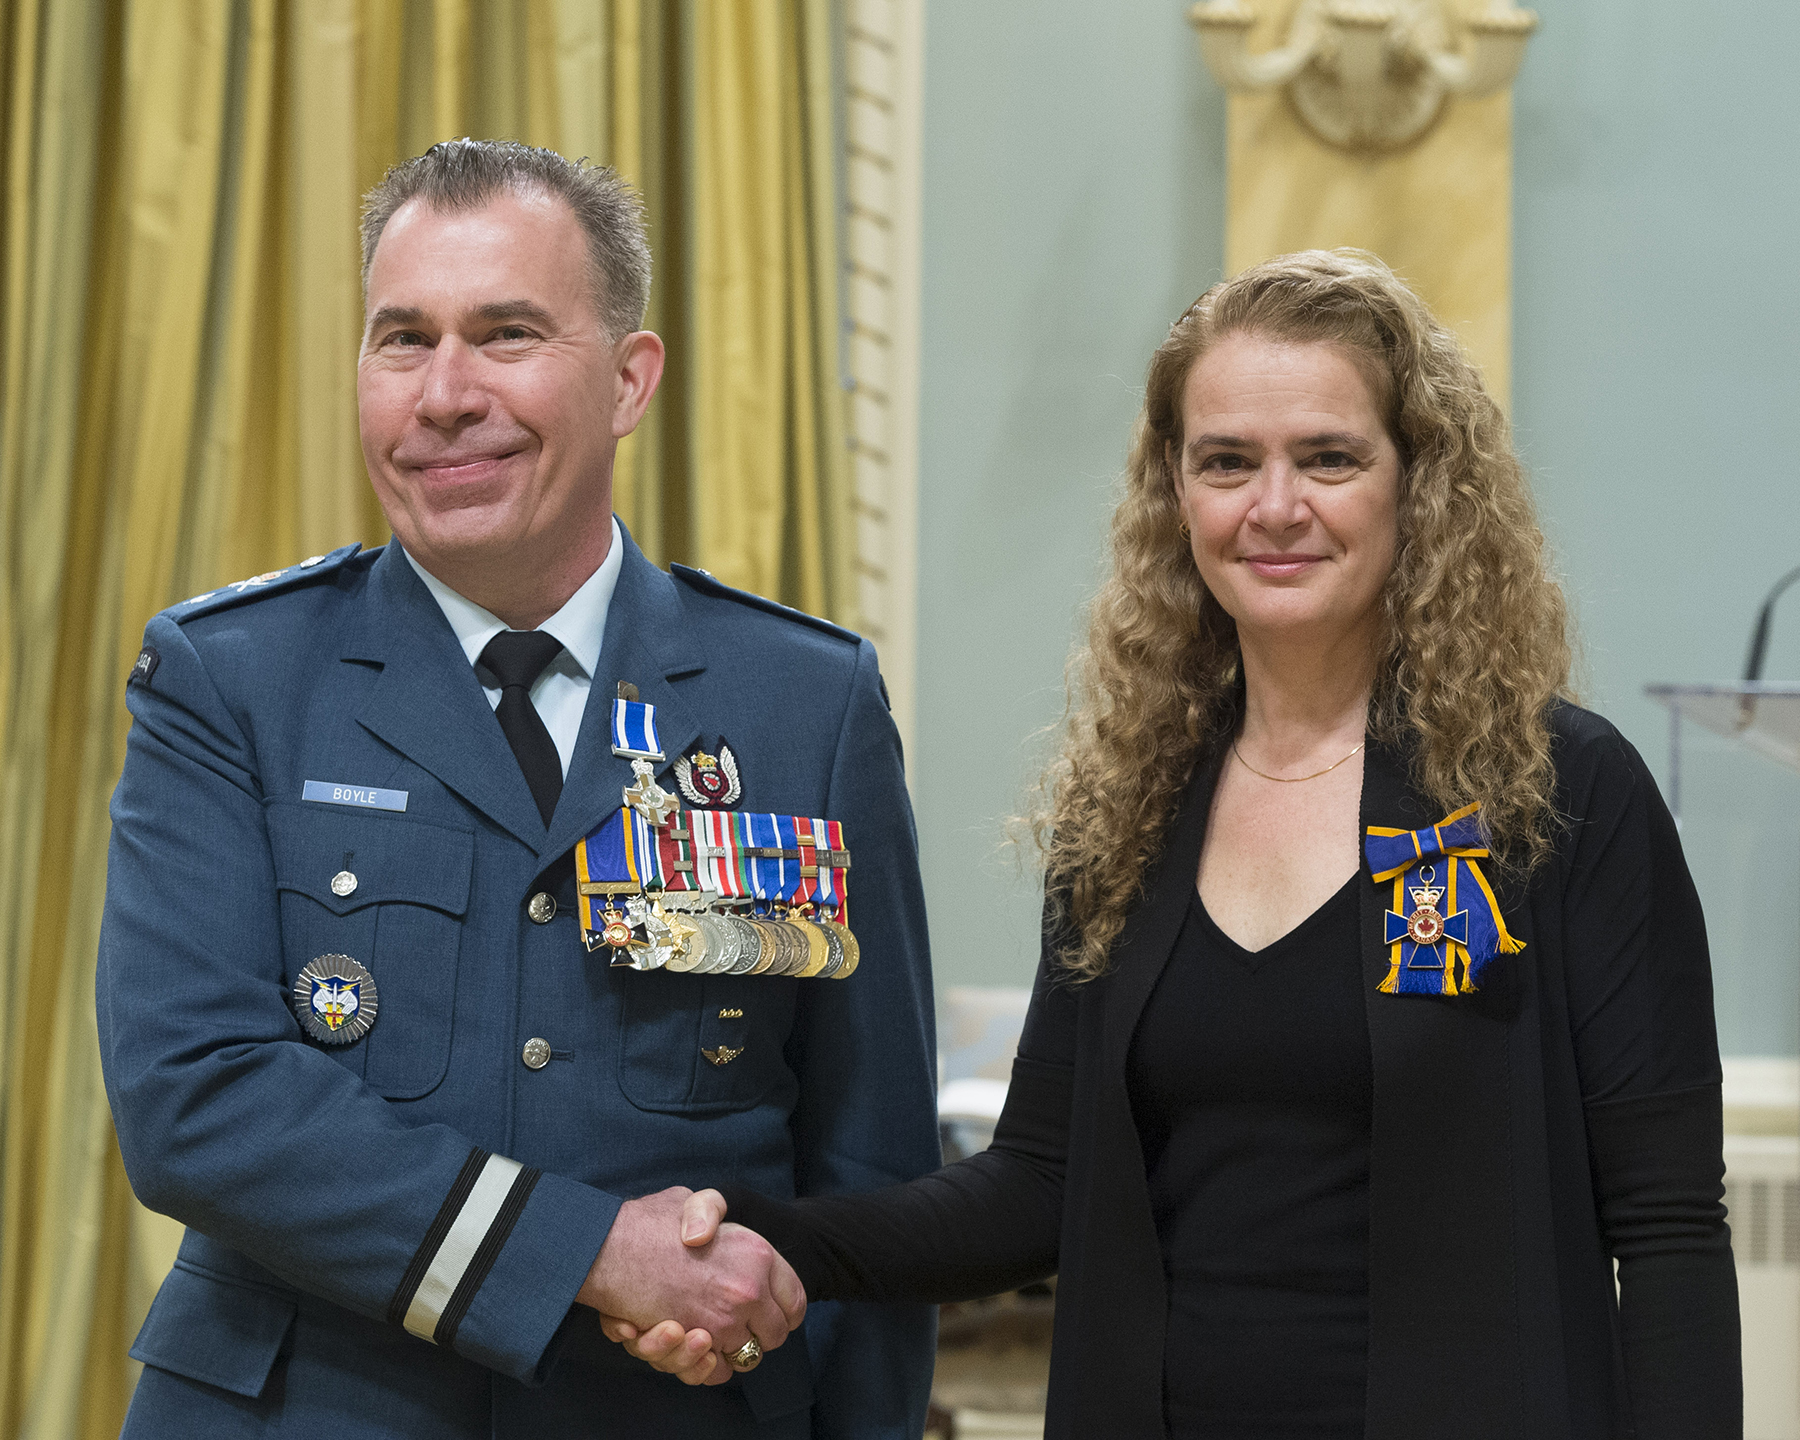 Colonel Sean Thomas Boyle receives the Meritorious Service Cross (Military Division) from Governor General and Commander-in-Chief of Canada Julie Payette on February 20, 2018. PHOTO: Sergeant Johanie Maheu, OSGG, GG05-2018-0066-009